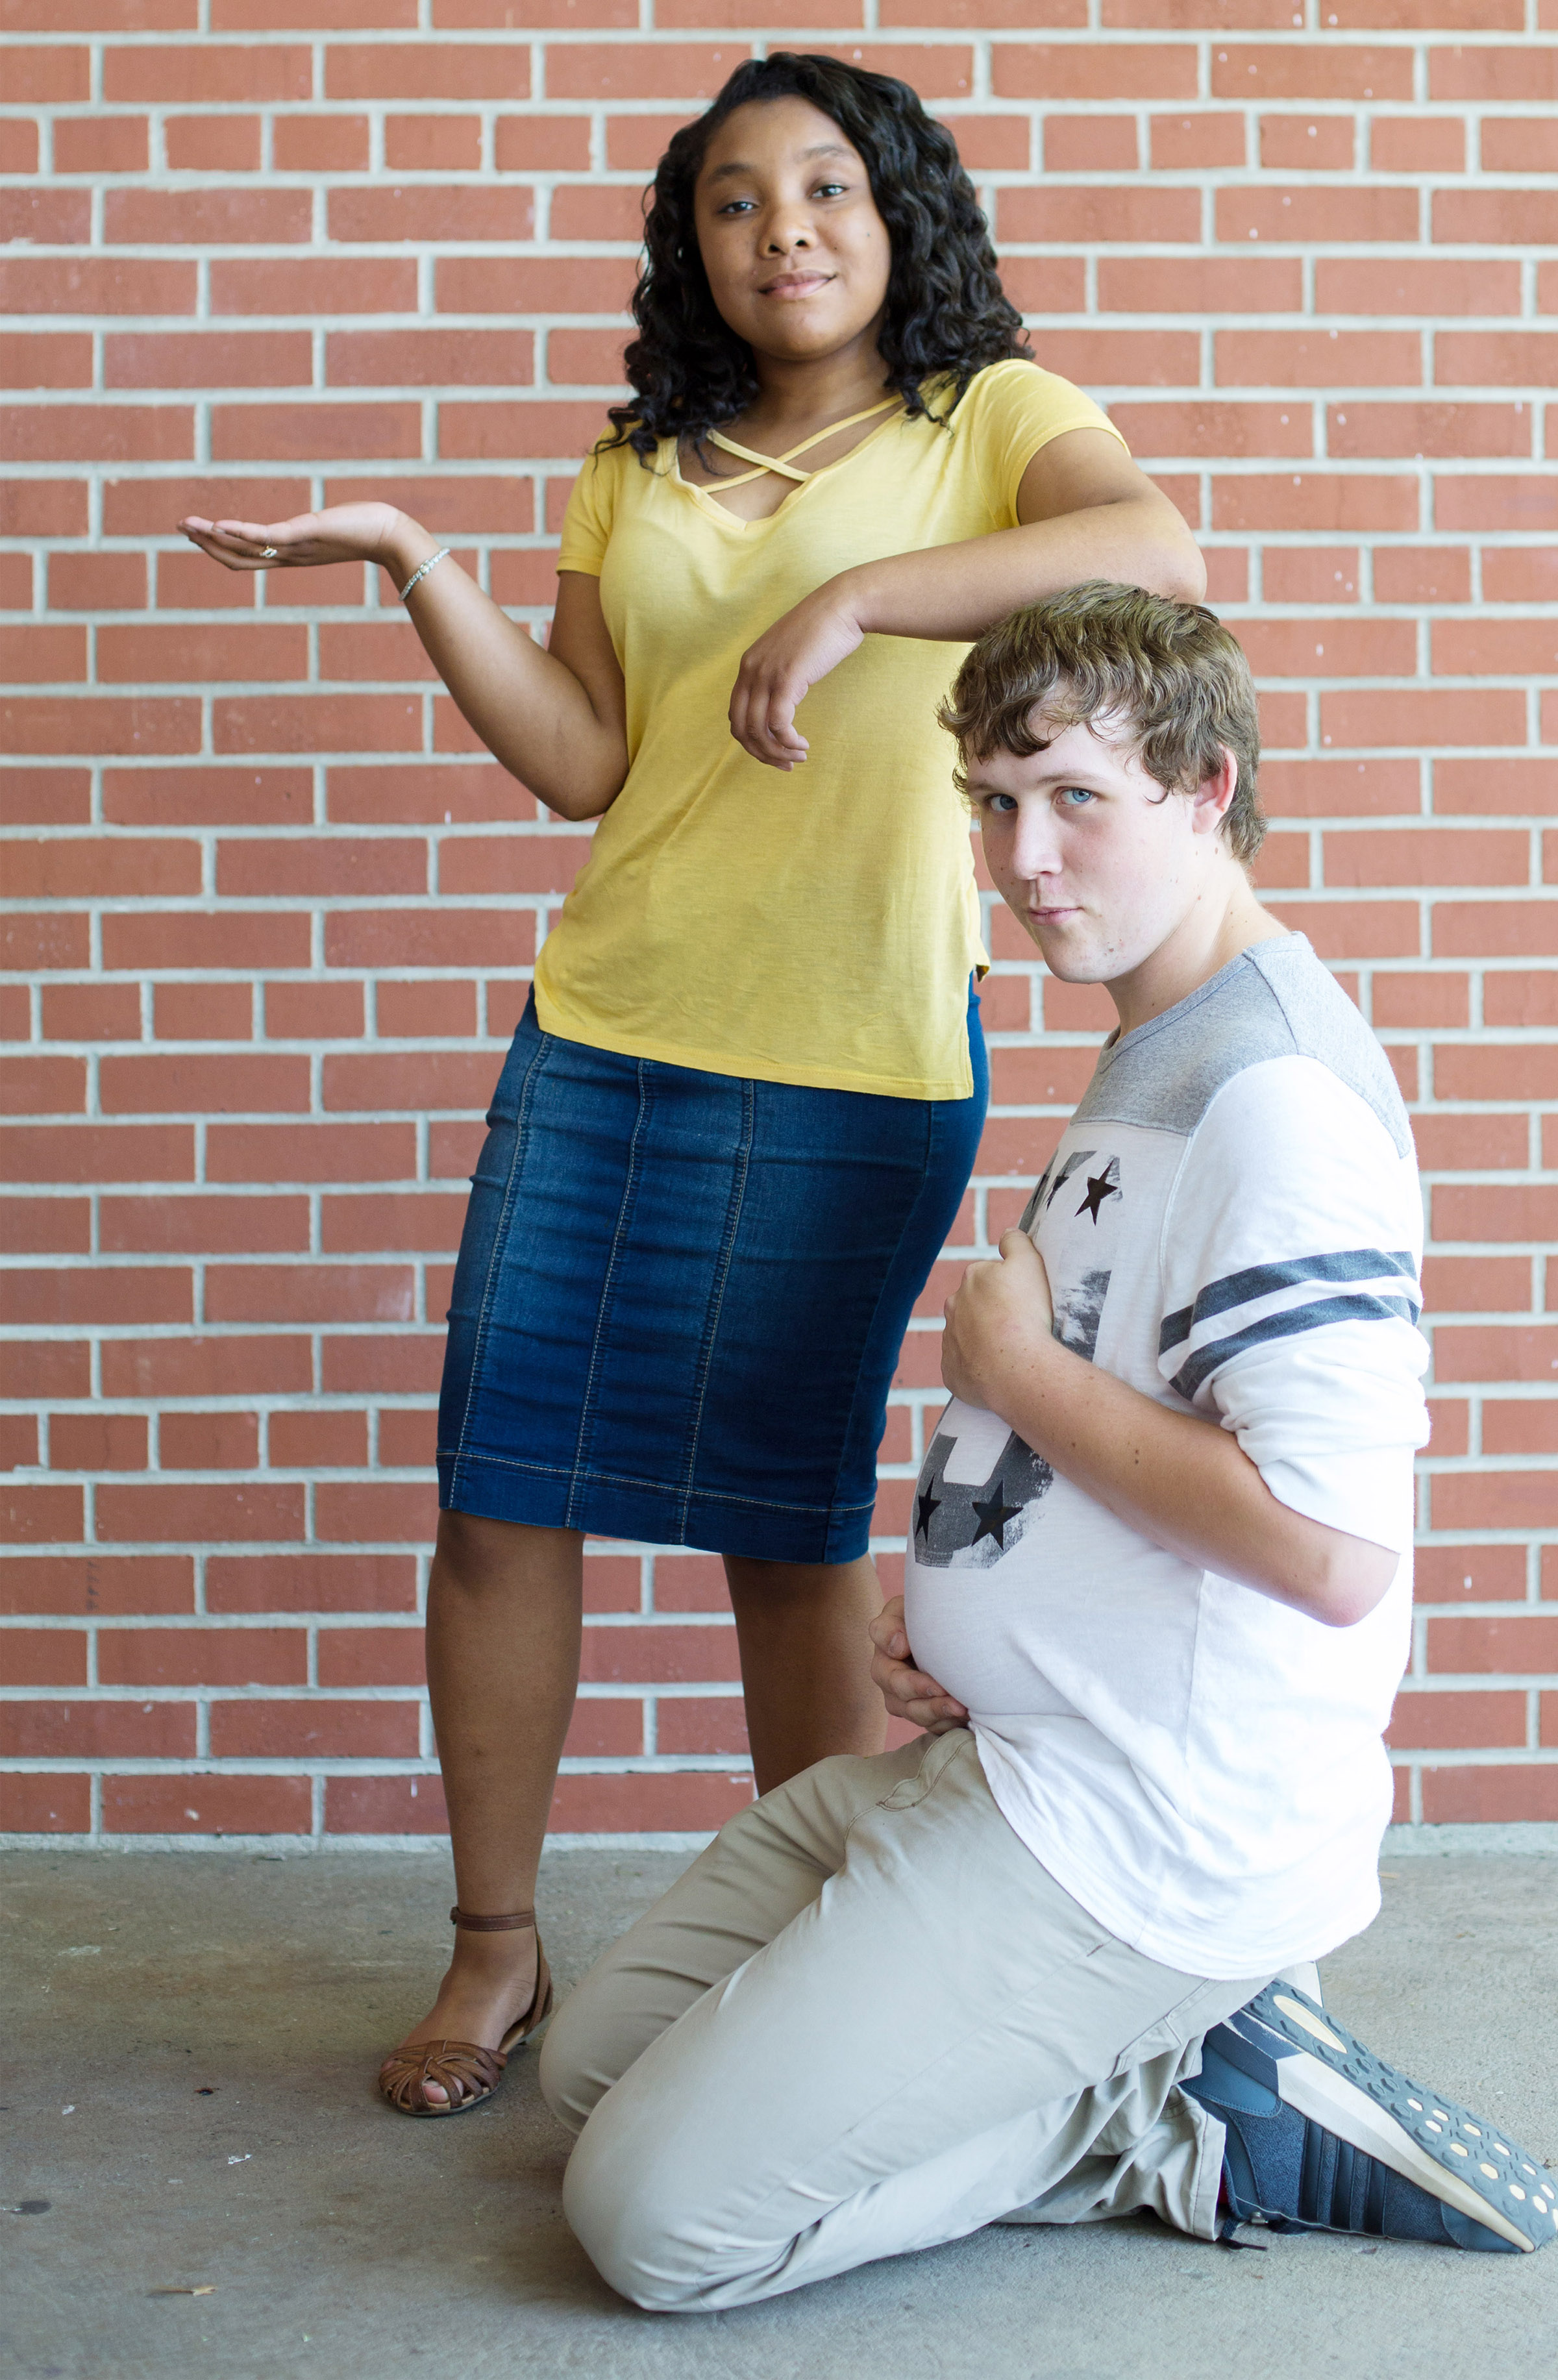 Kayla Atkinson and Jared Brewster were voted Class Clown.